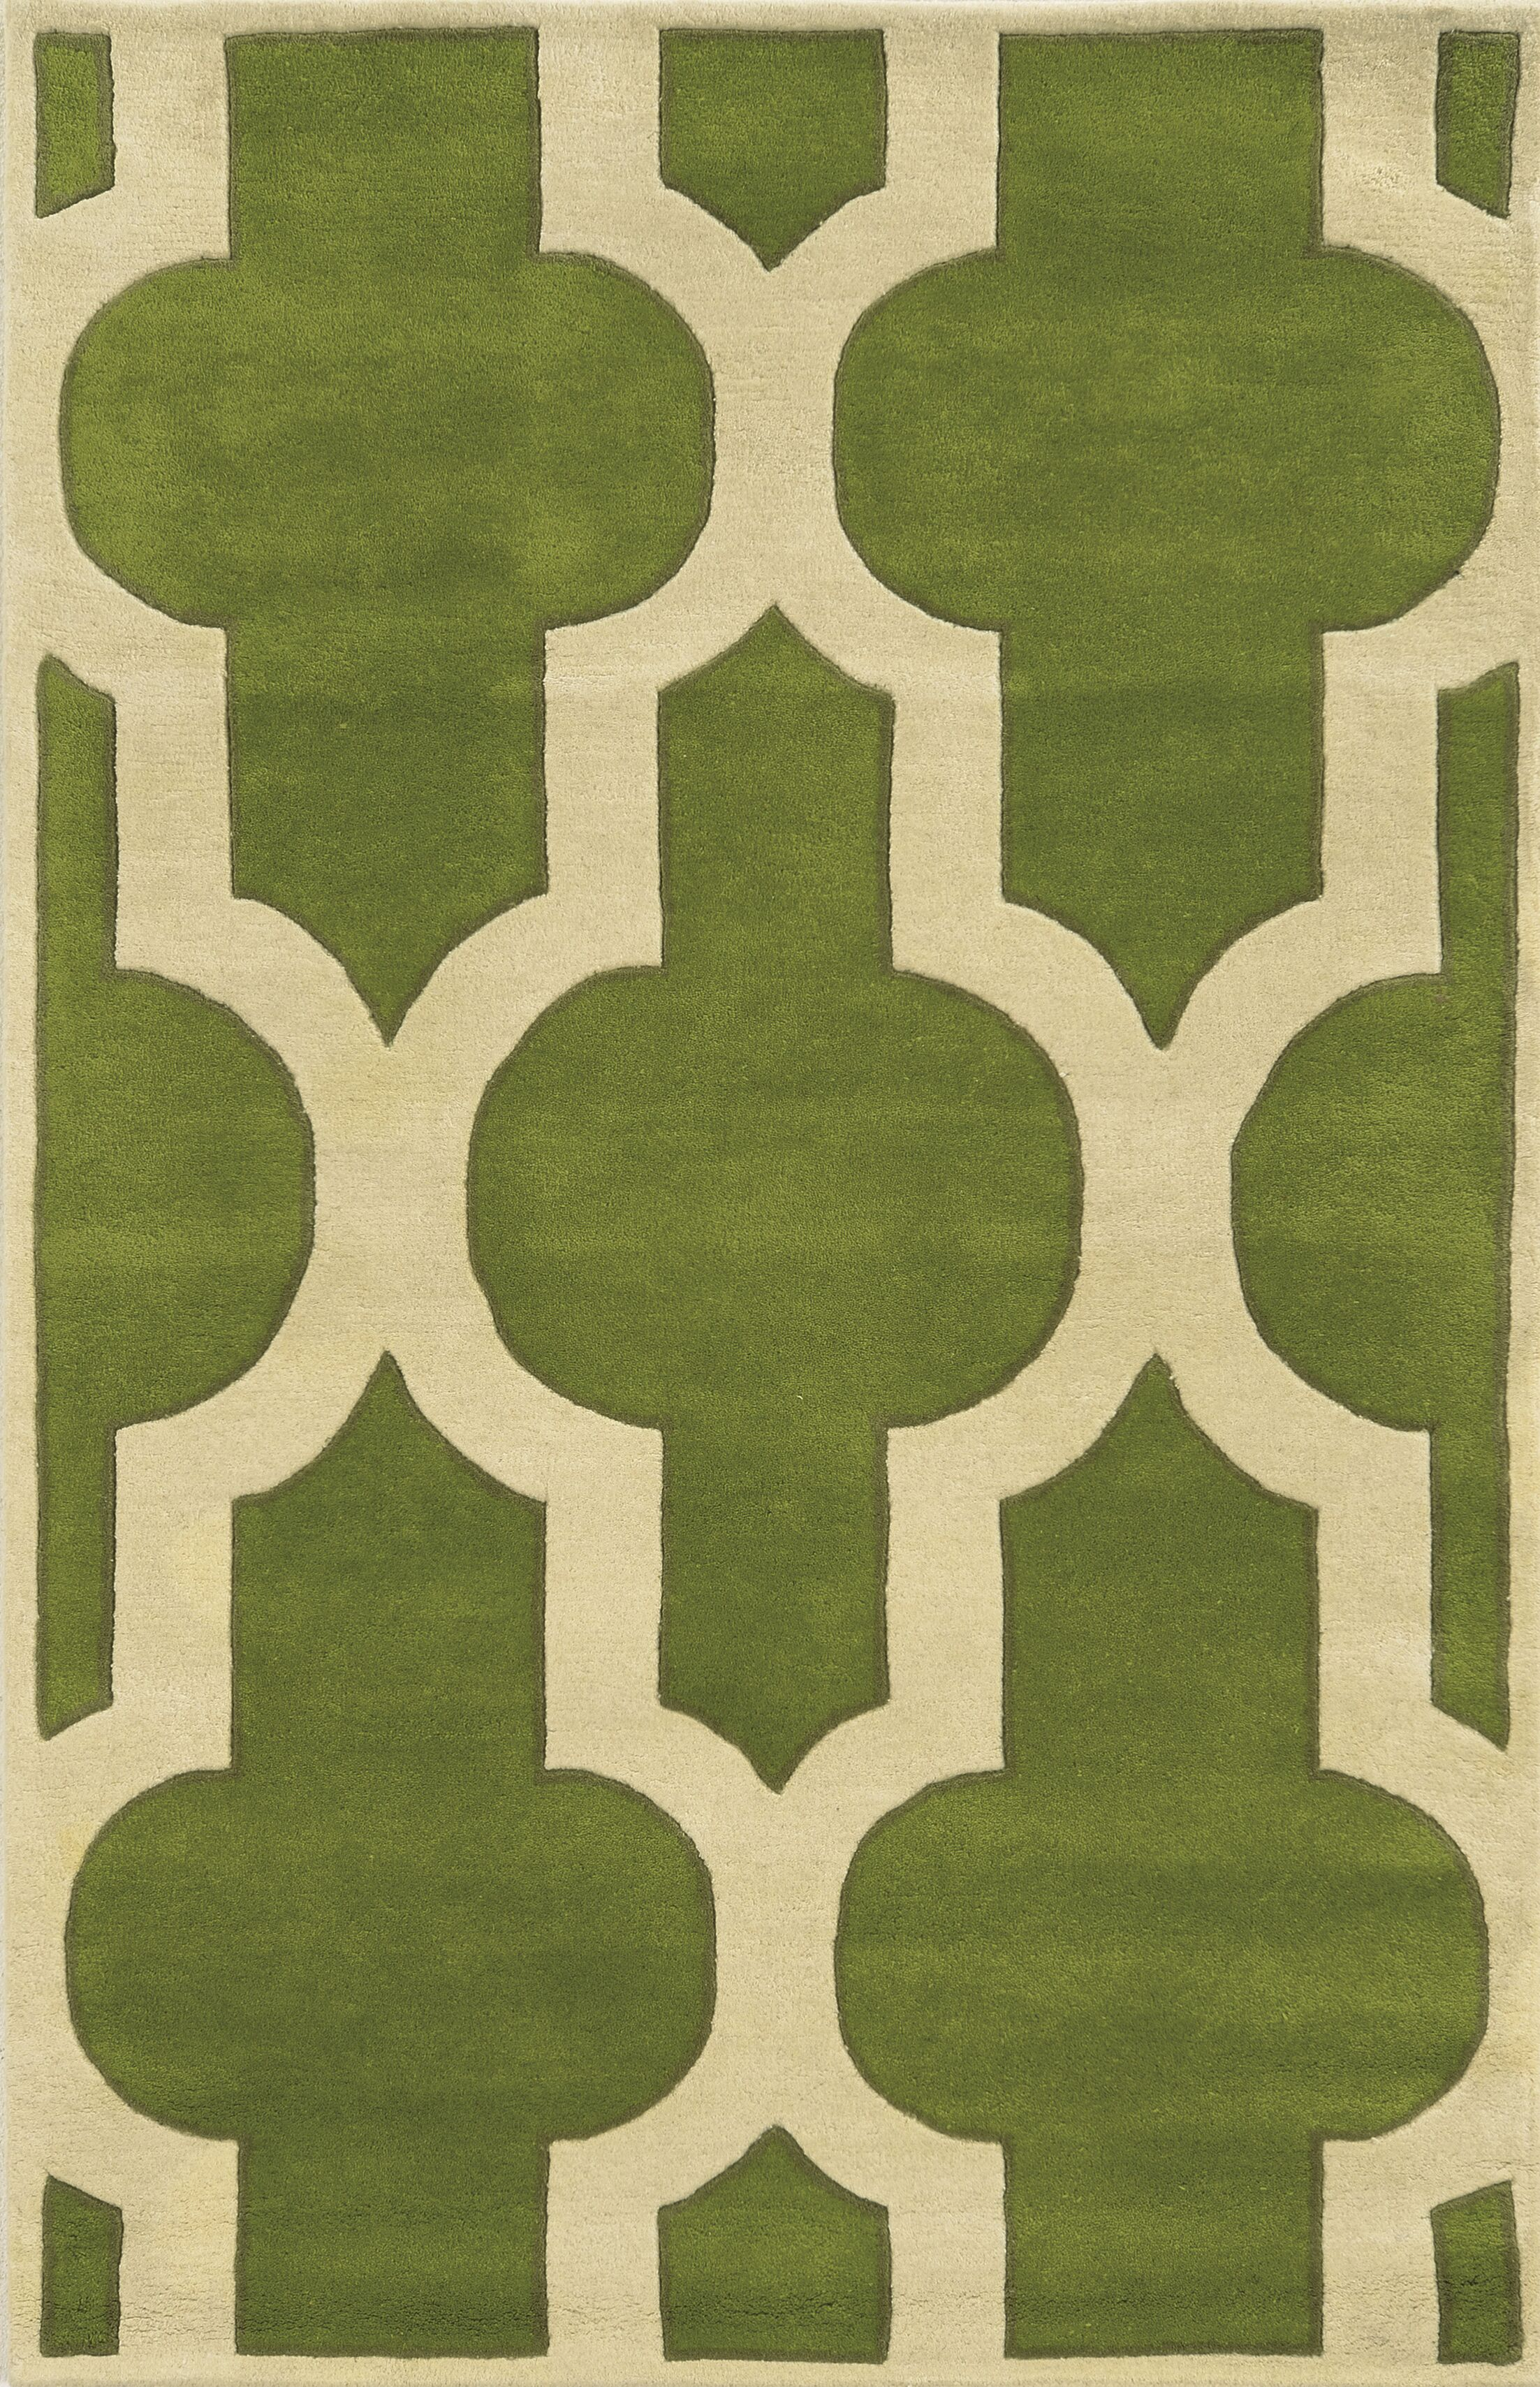 Marghera Hand-Tufted Green/Ivory Area Rug Rug Size: Rectangle 5' x 8'